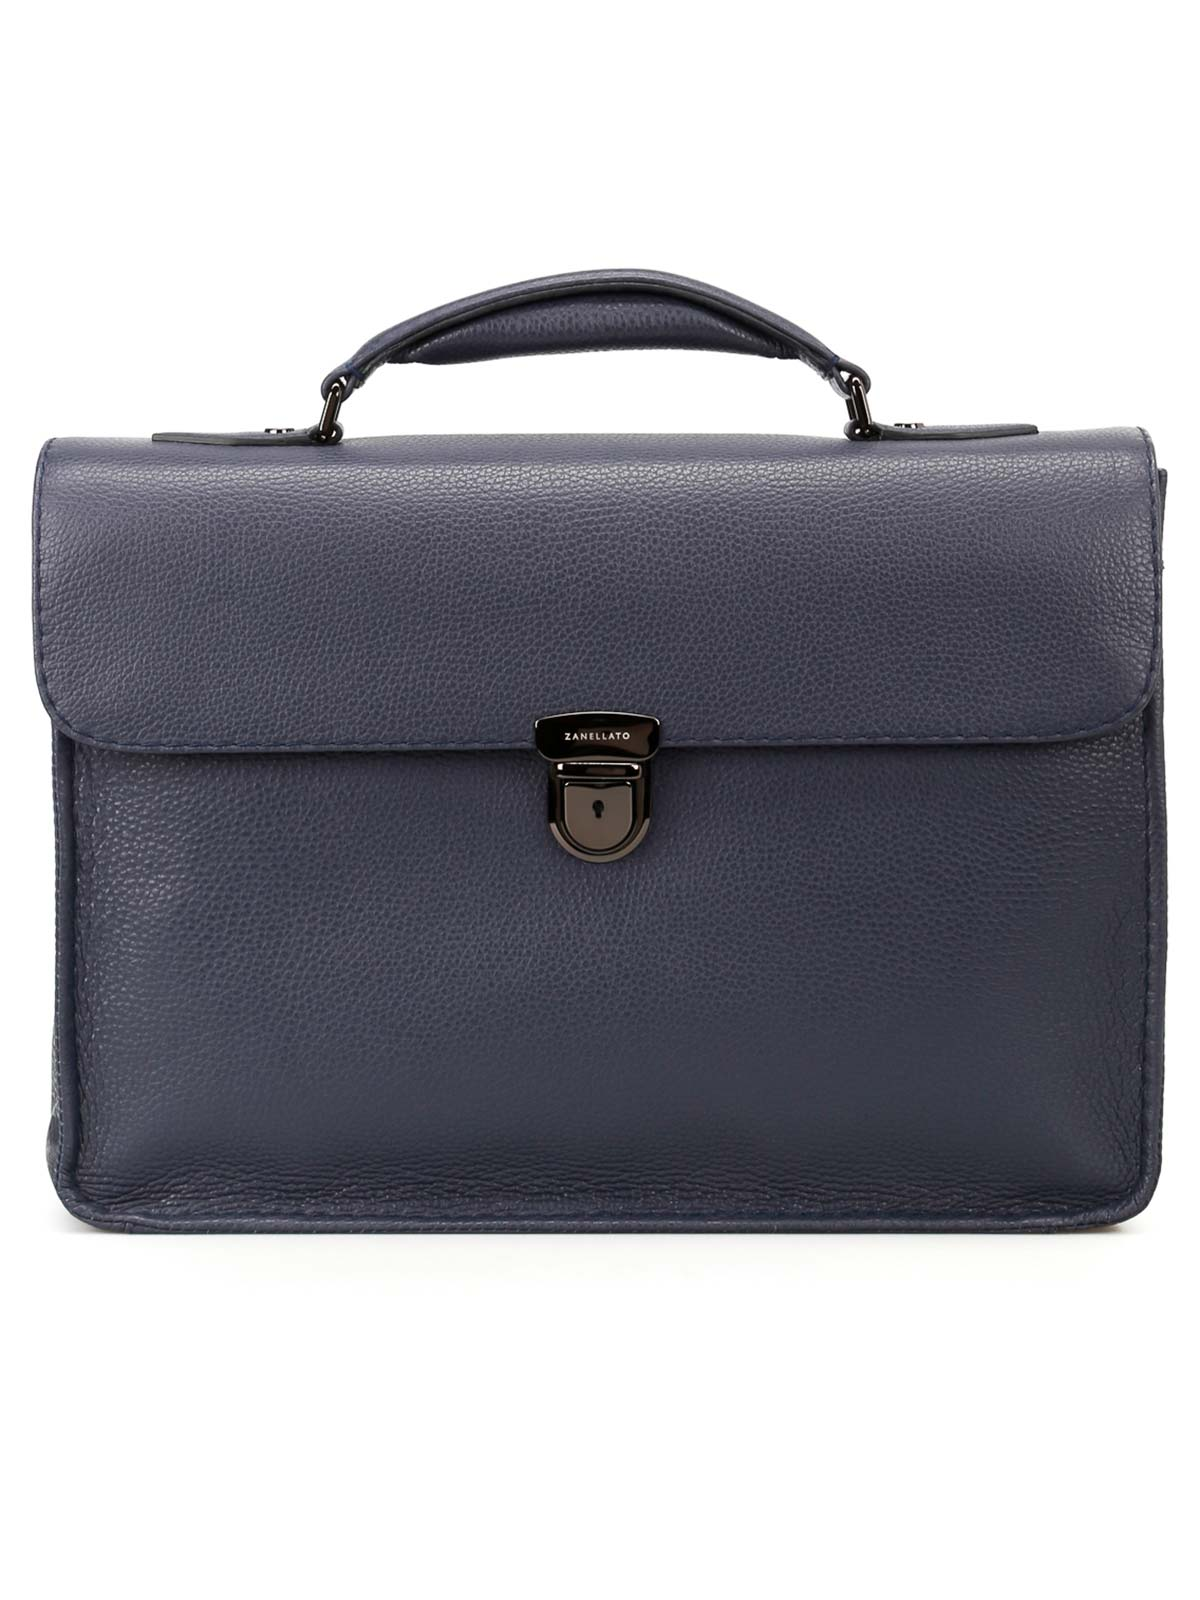 Picture of ZANELLATO | Men's Mestro Dollarone Bag